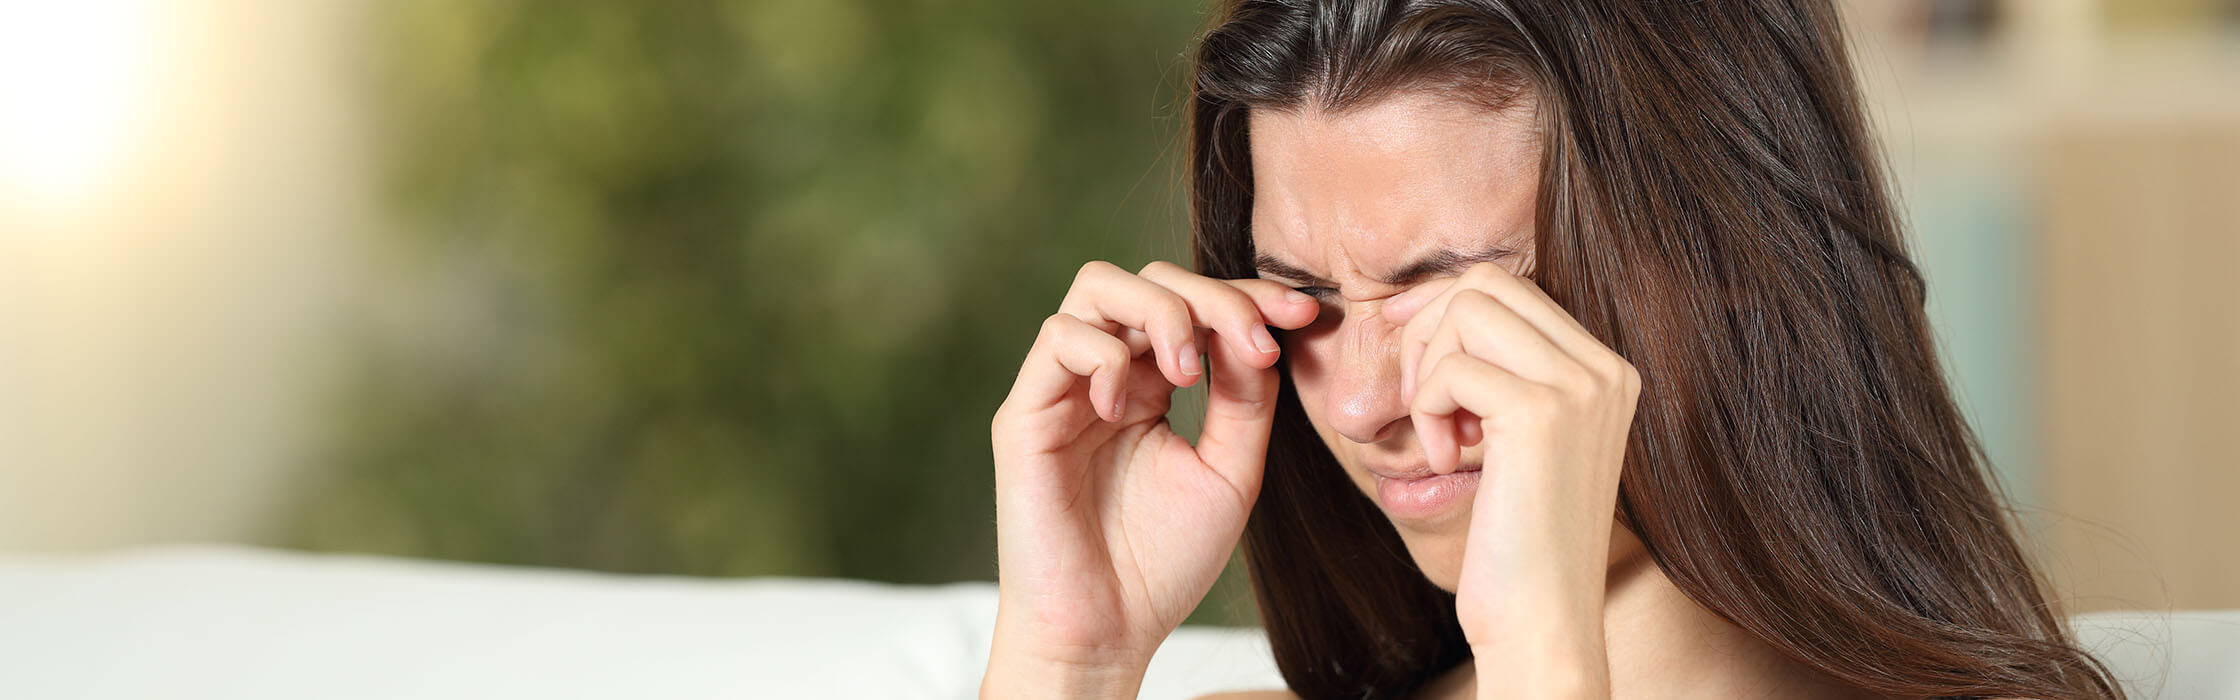 A woman itching their eye, infected with conjunctivitis